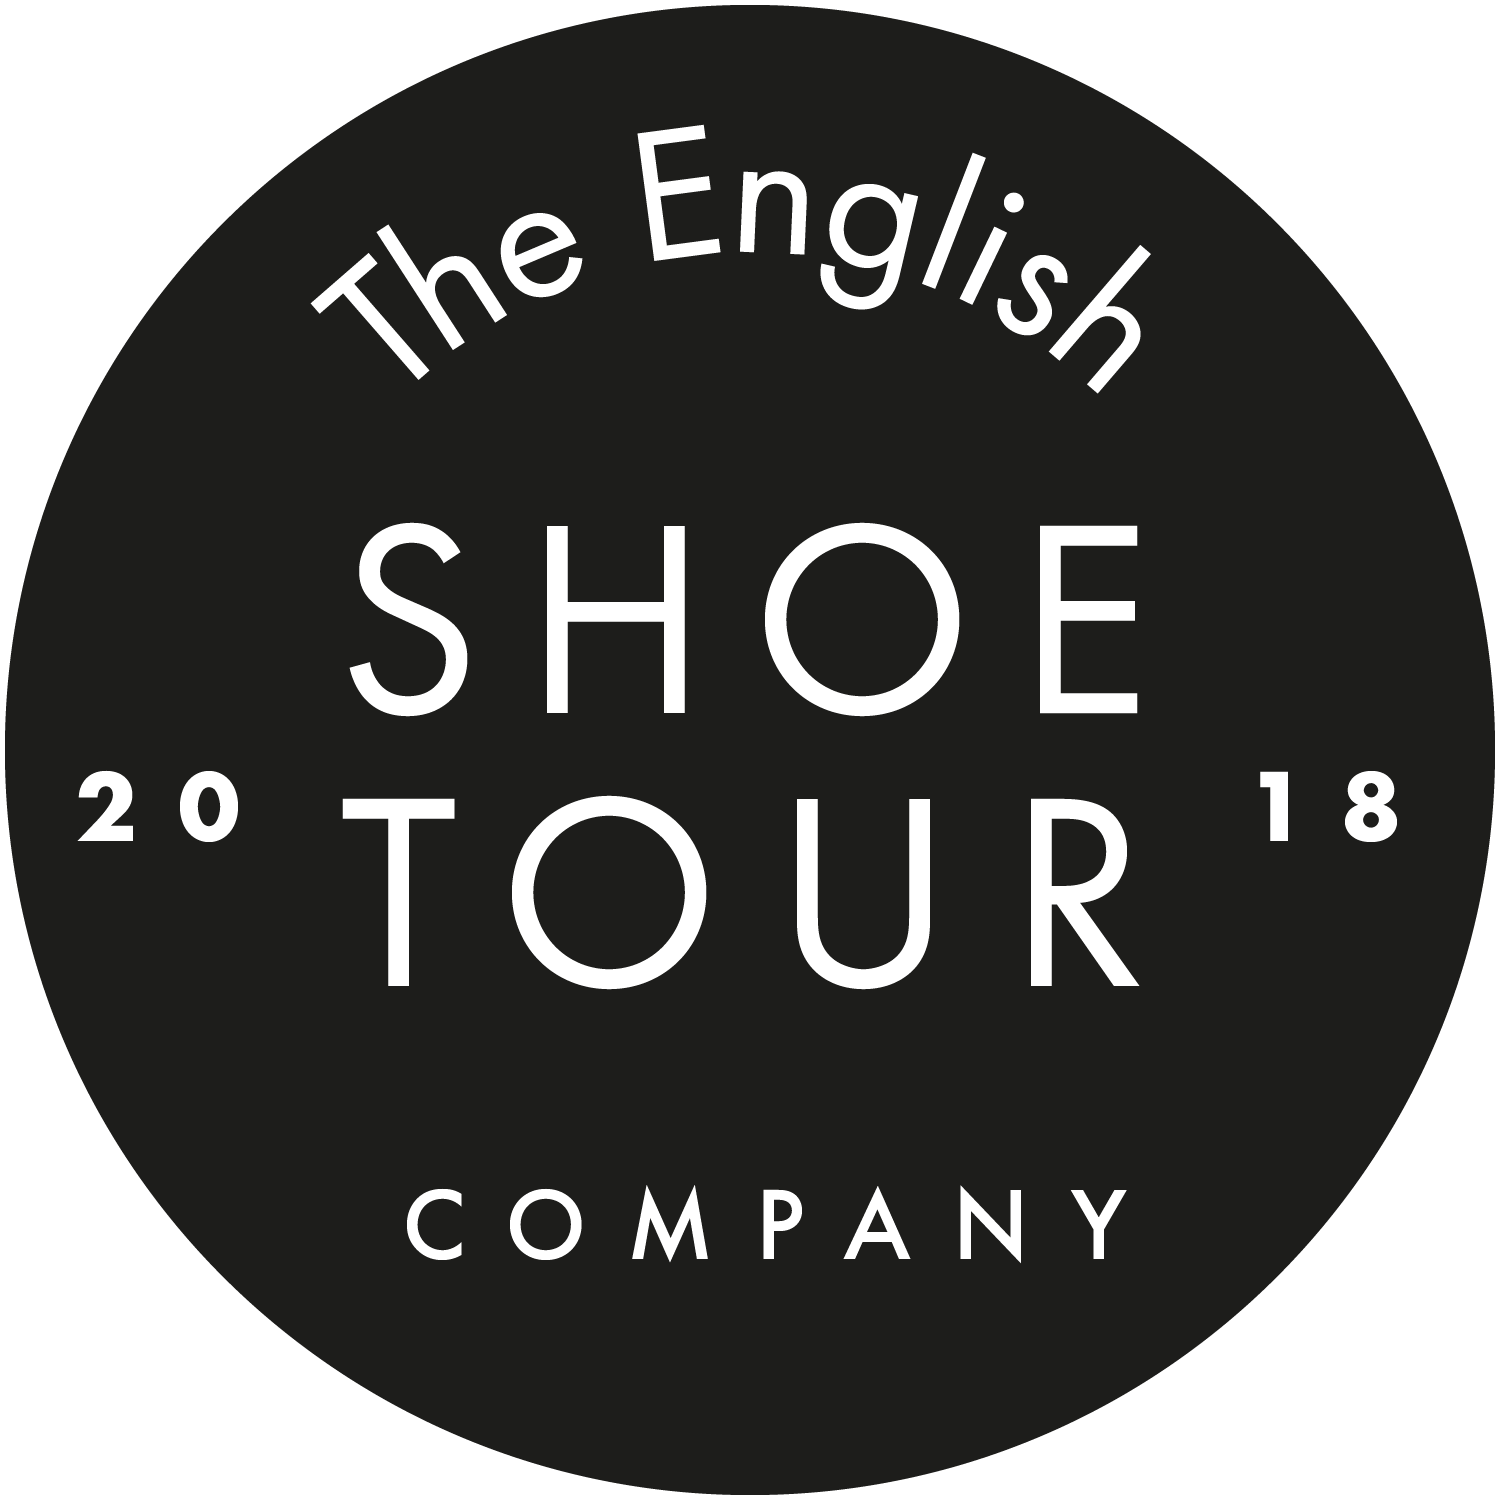 The English Shoe Tour Company